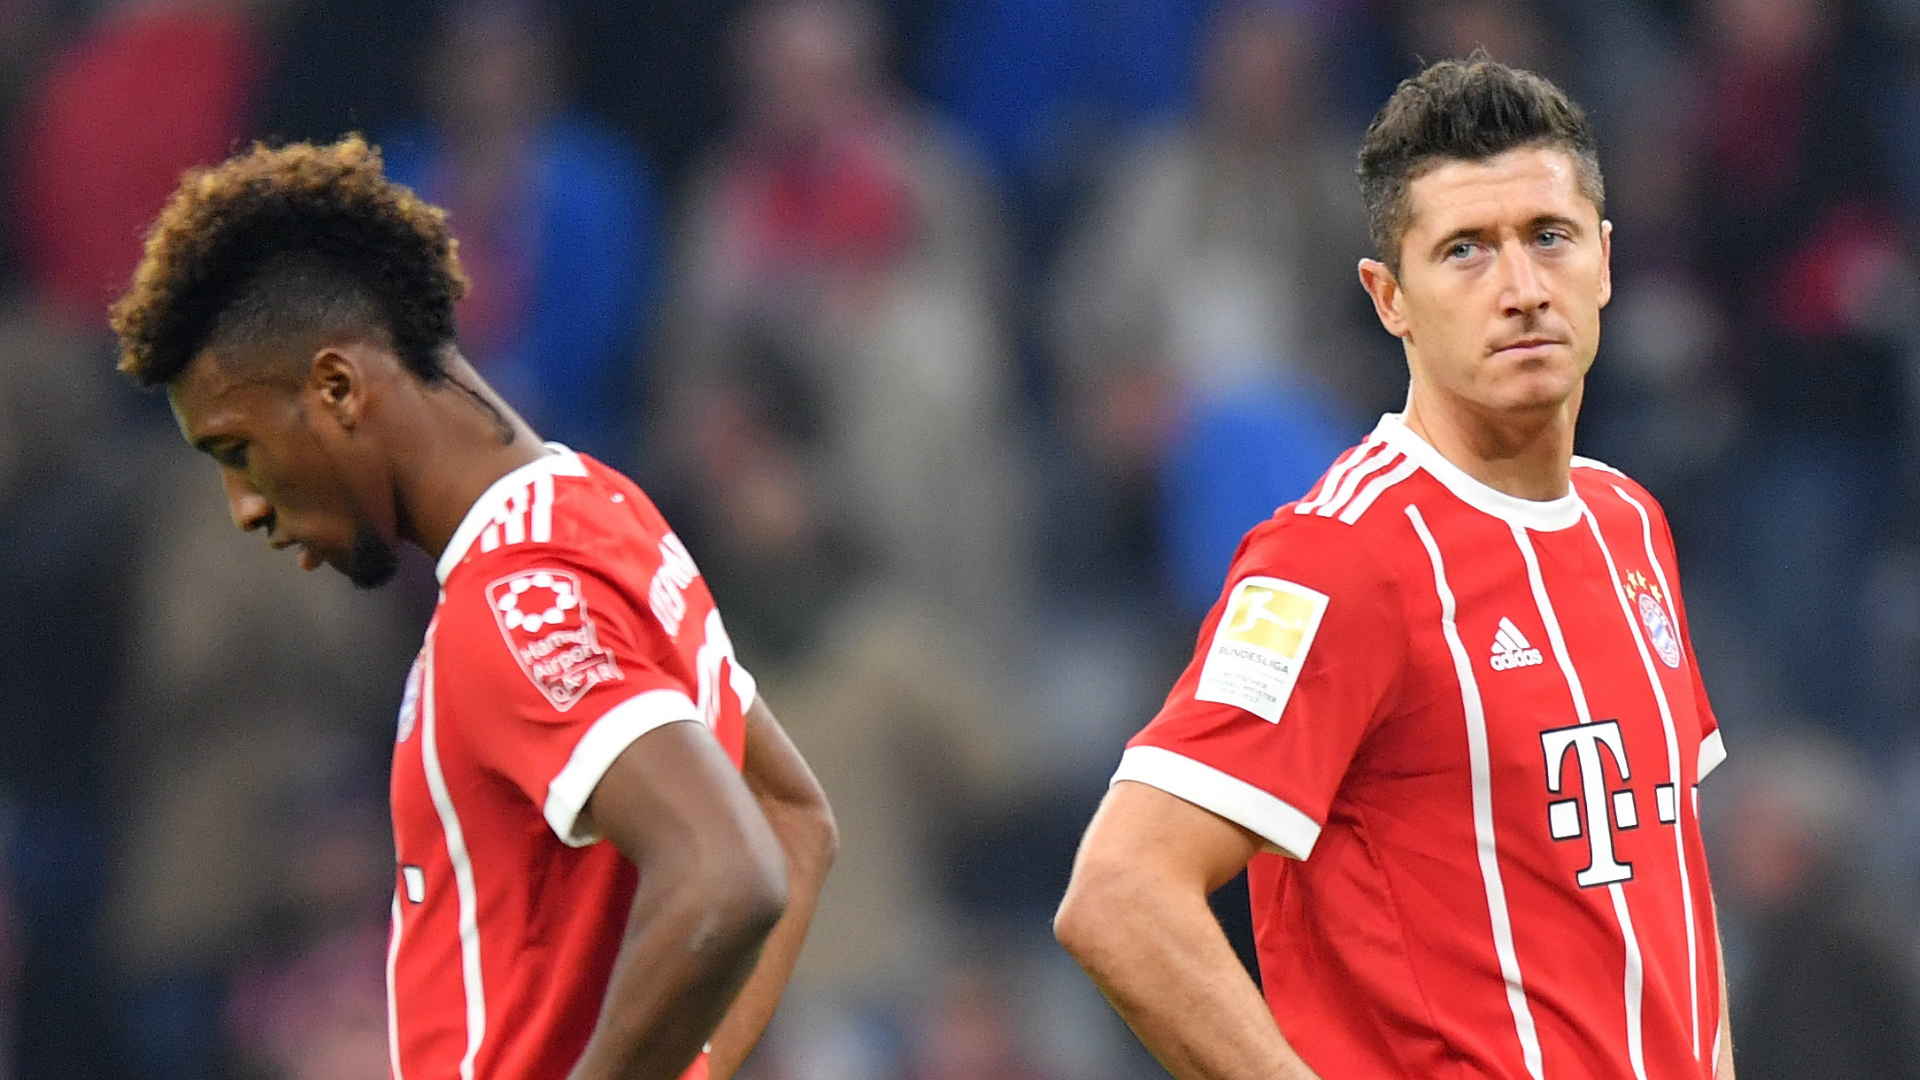 Lewandowski and Coman involved in fist-fight at Bayern Munich's training session